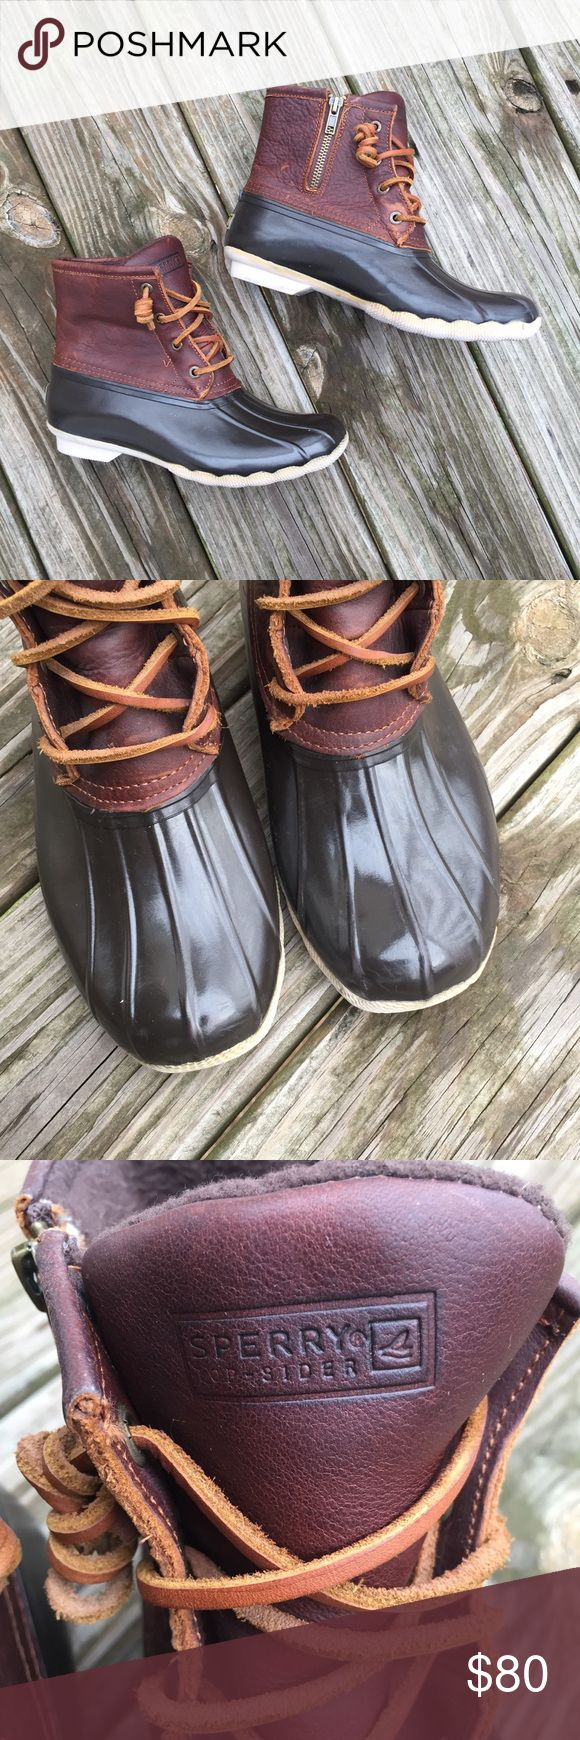 Sperry Saltwater Duck Boots Waterproof Sz 7 Condition: excellent pre-owned; No scuffs, rips, stains or holes; Pet and Smoke Free Home!! Please see ALL pictures for details and measurements. Waterproof! Sperry Top-Sider Shoes Winter & Rain Boots